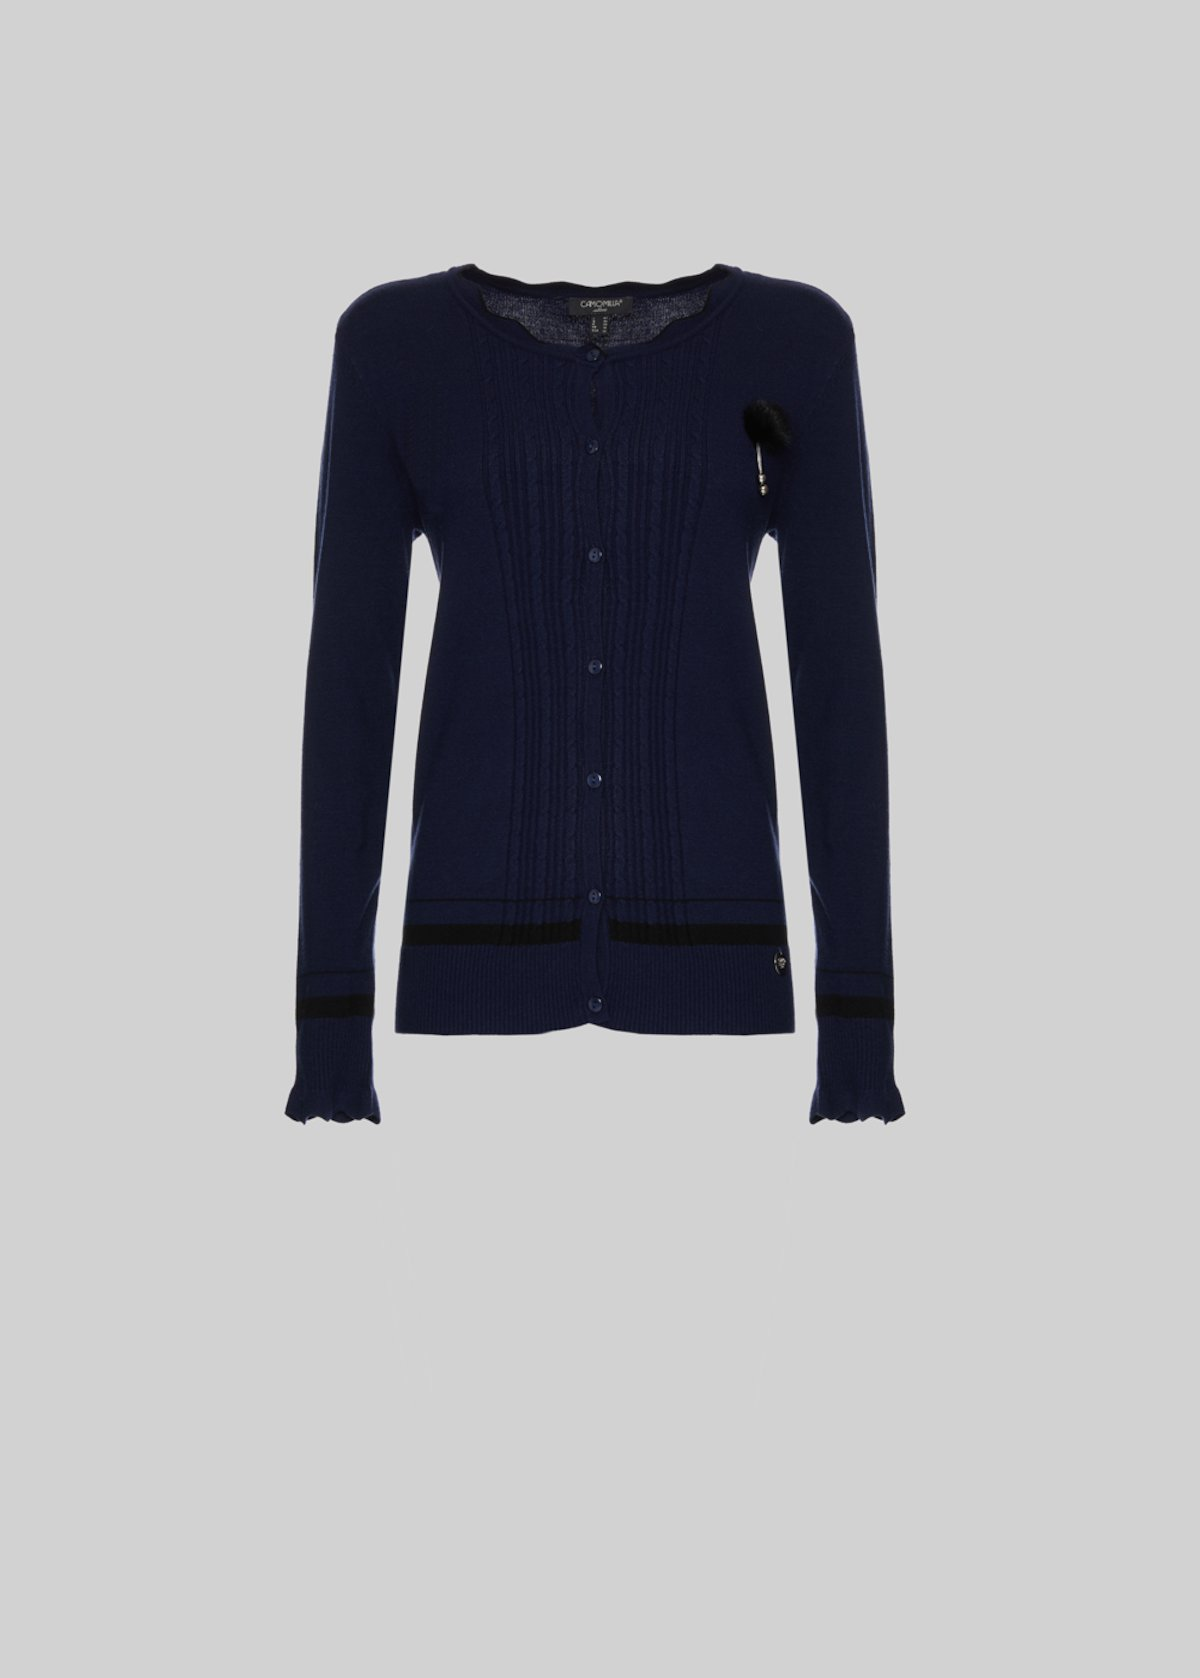 Cammy Cardigan with button closure - Medium Blue / Black / Stripes